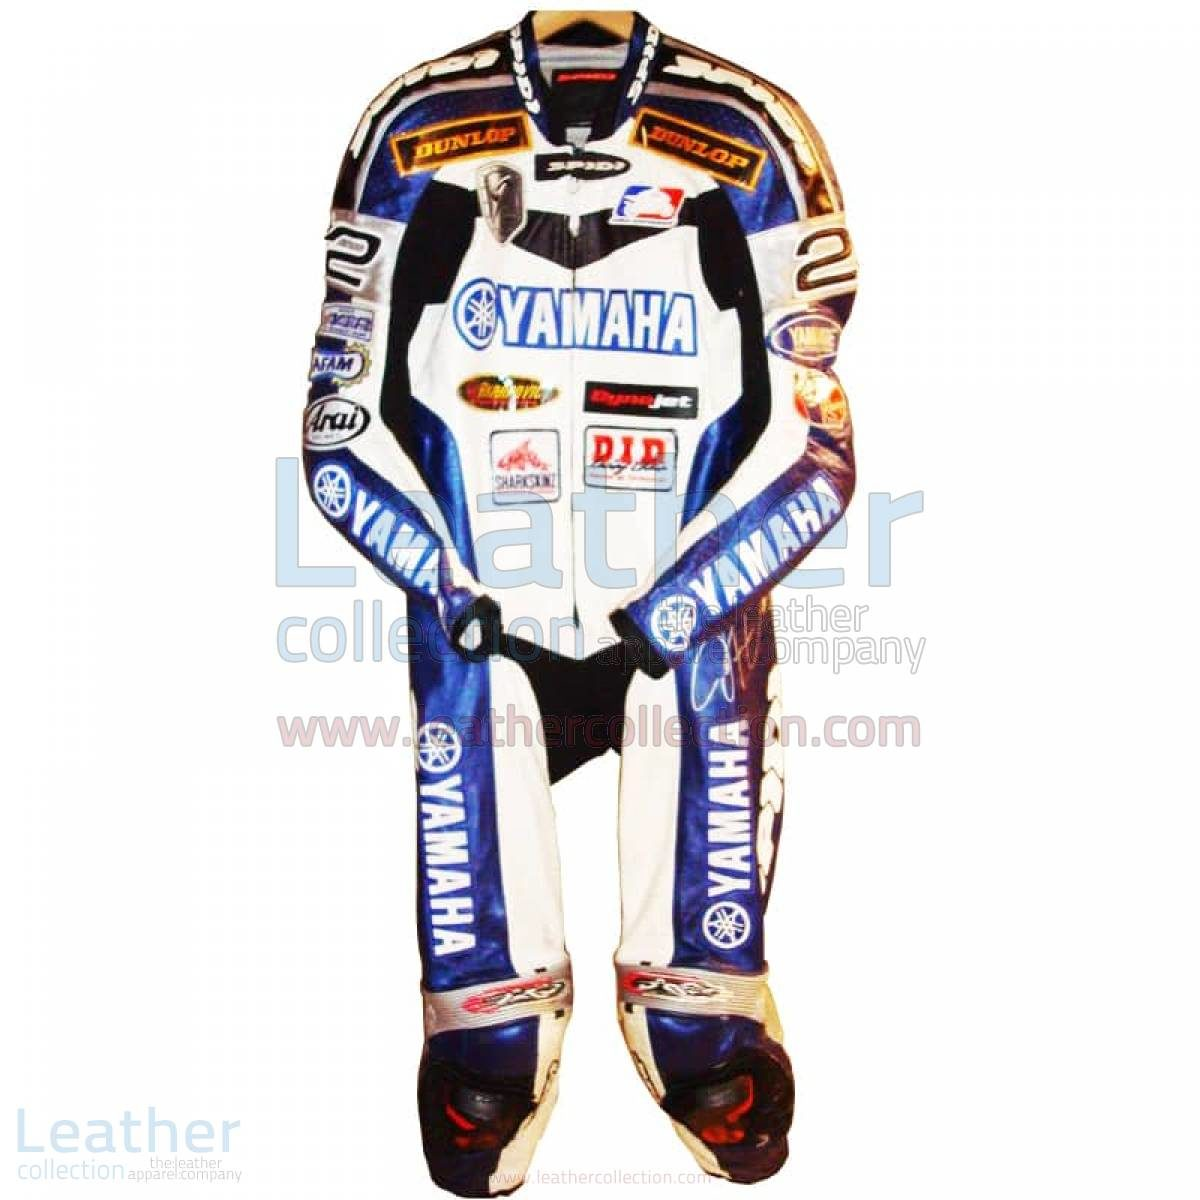 yamaha motorcycle suit